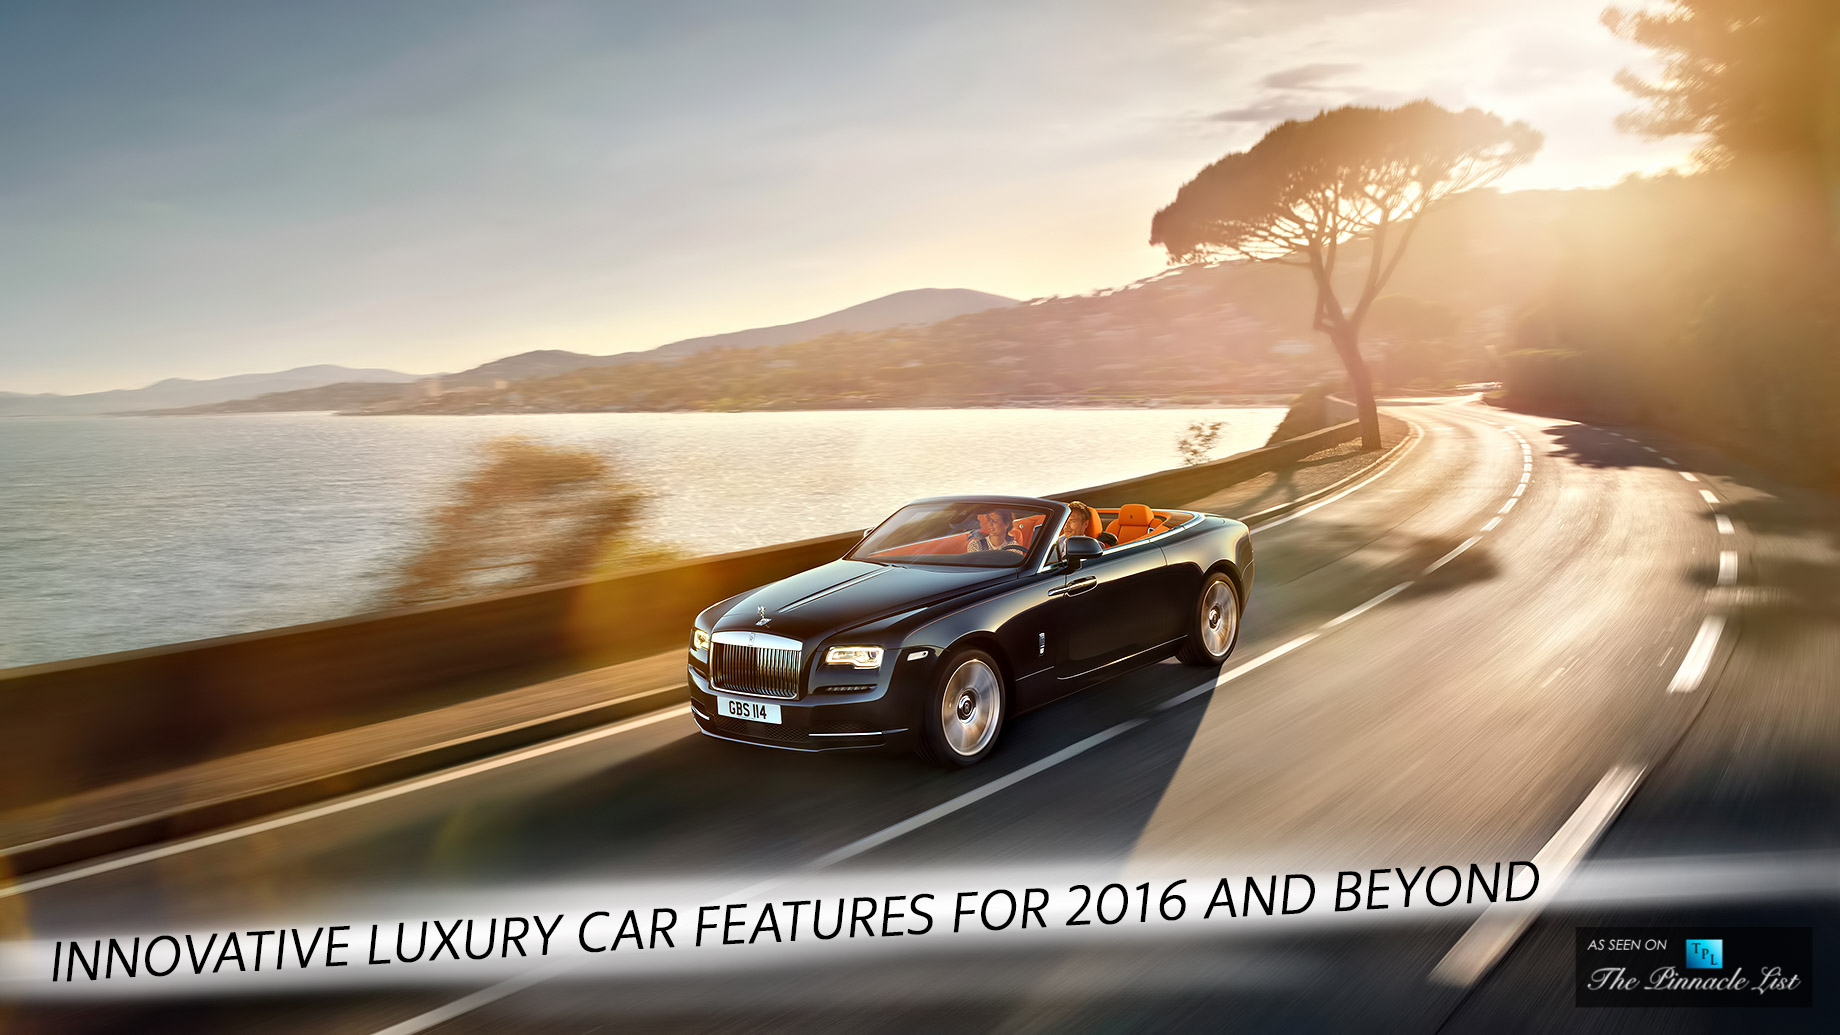 Innovative Luxury Car Features for 2016 and Beyond